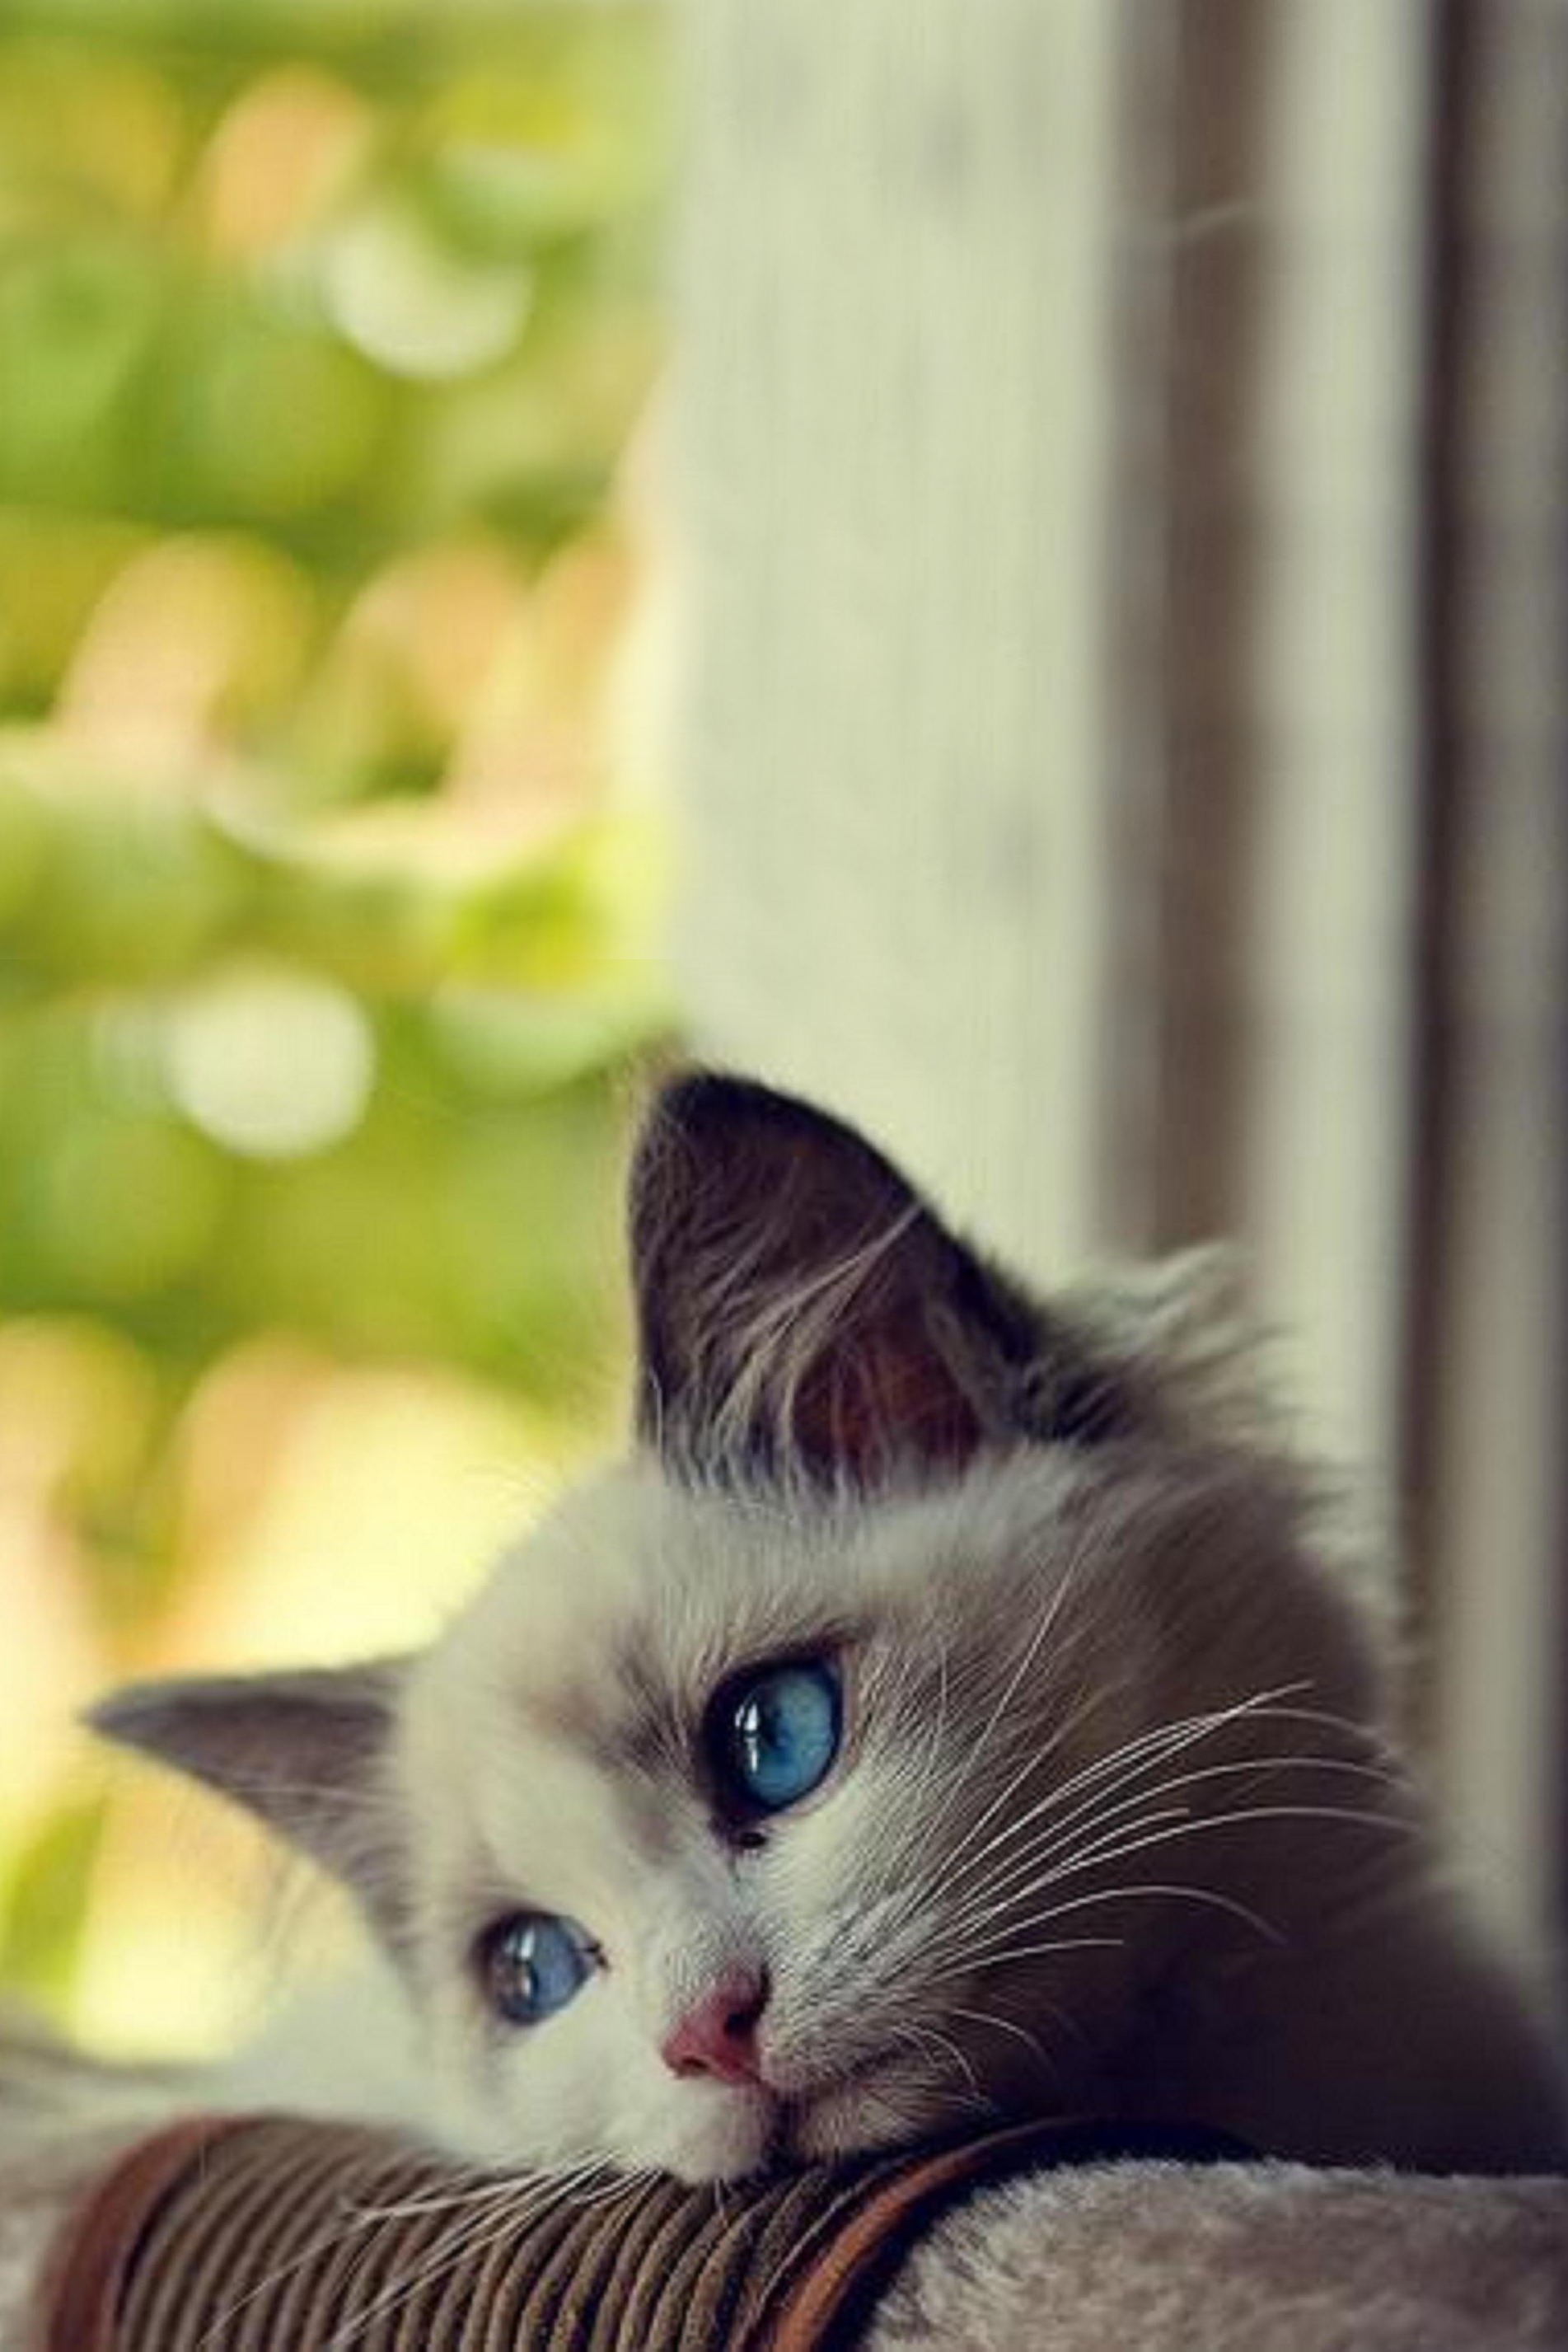 Cute Girl Wallpaper For Android Mobile Cute Kitten Bored Android Wallpaper